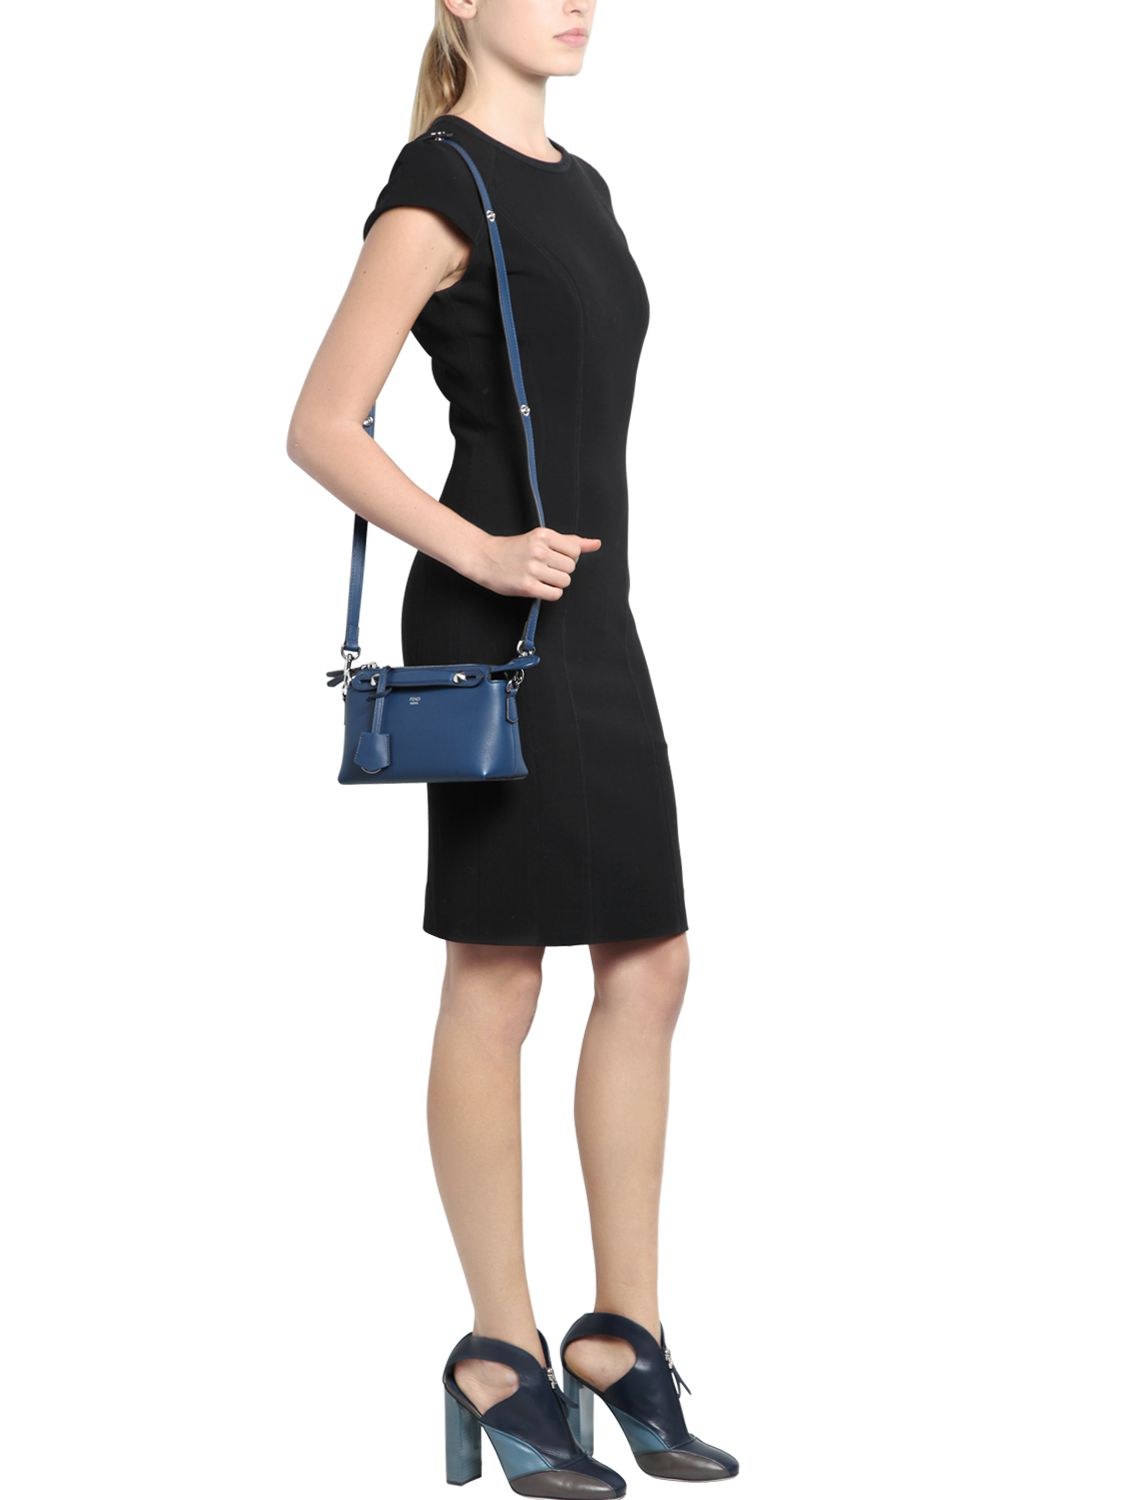 a6e4aec3dc46 ... promo code c35c1 39678 Fendi Mini by The Way Crossbody Bag in Blue -  Lyst ...